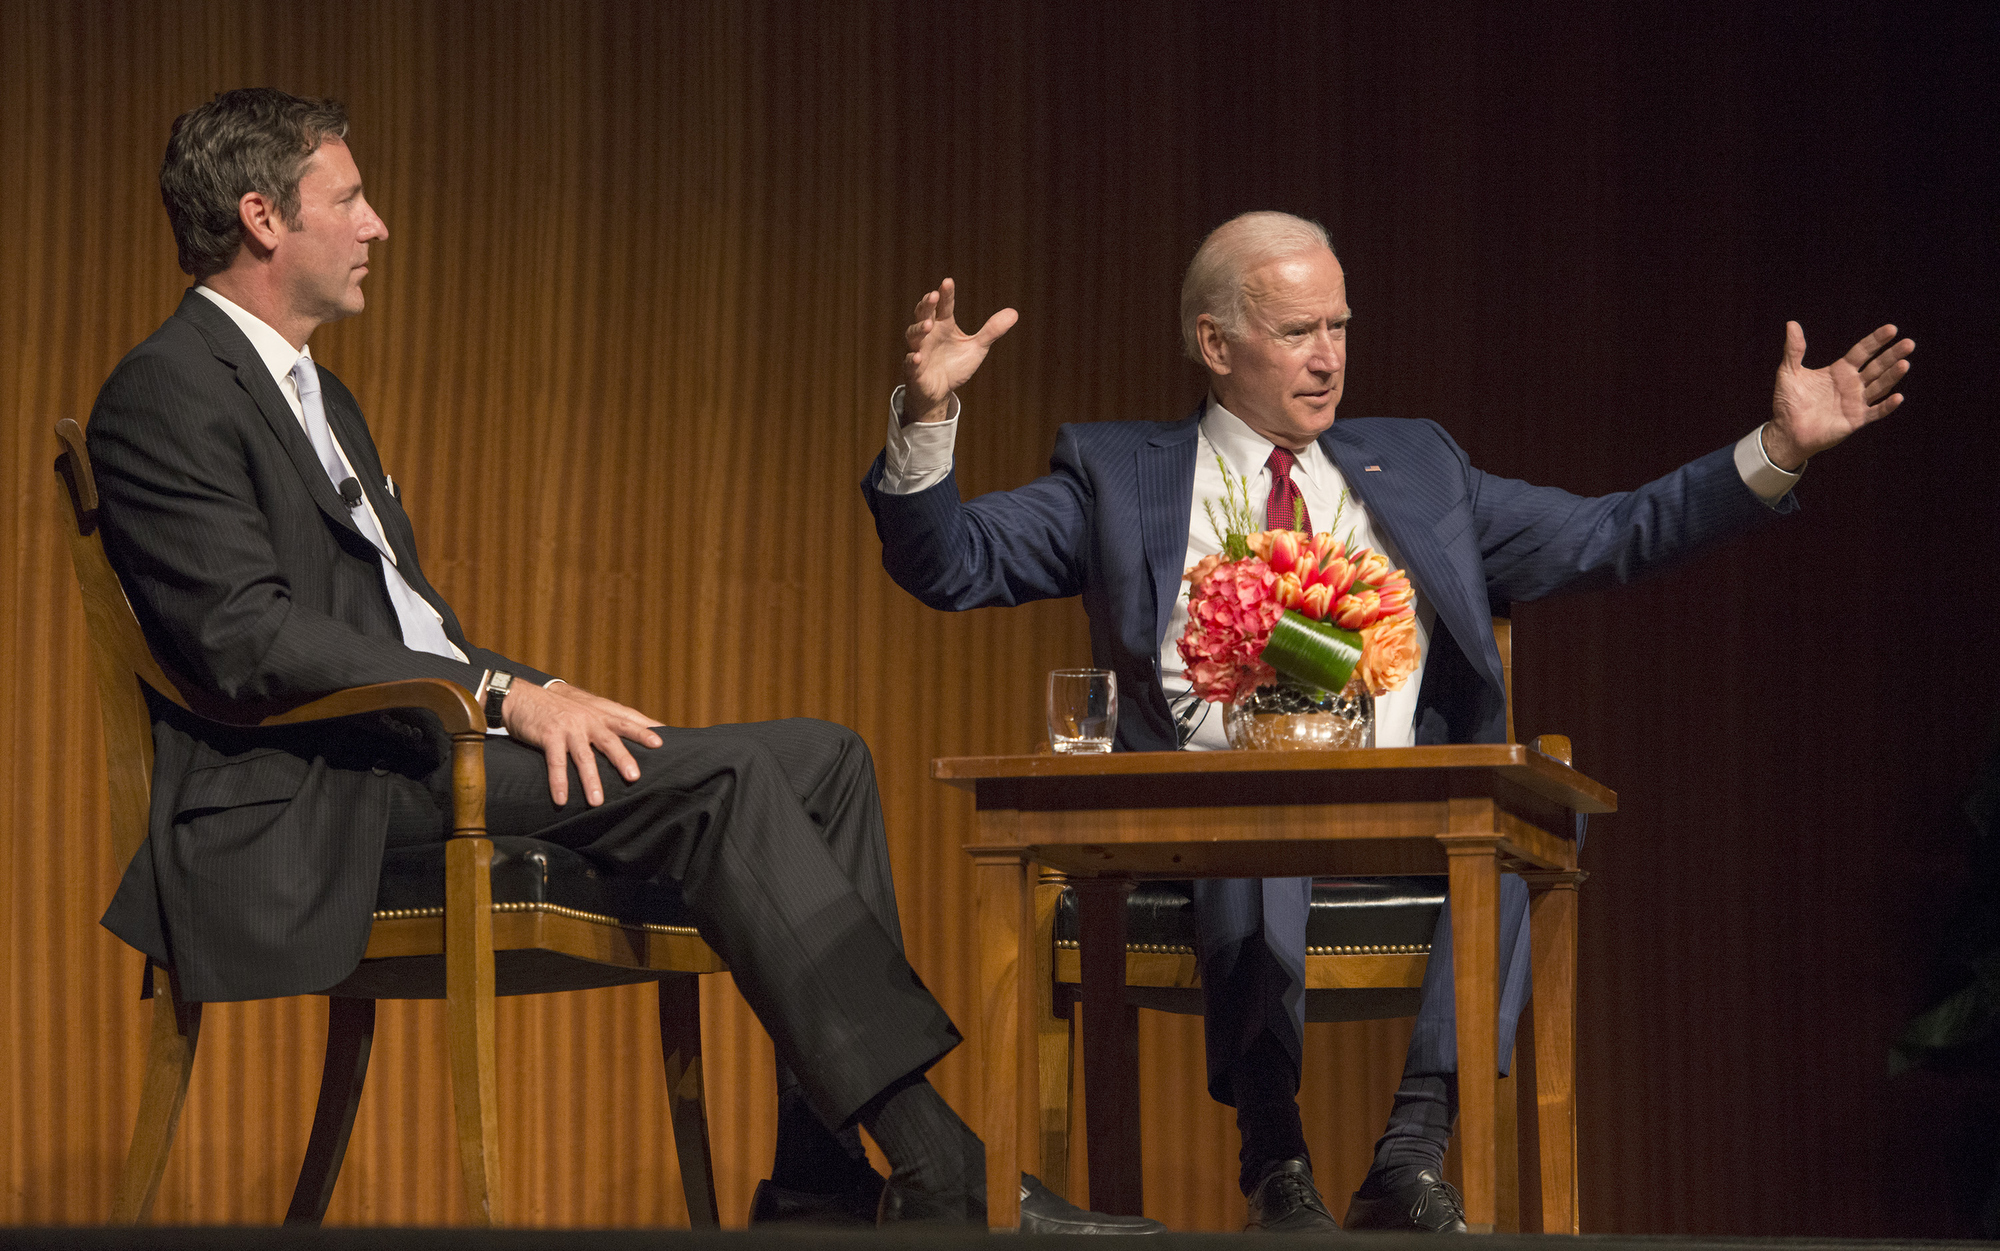 Still struggling for attention, Biden leans on friendly media